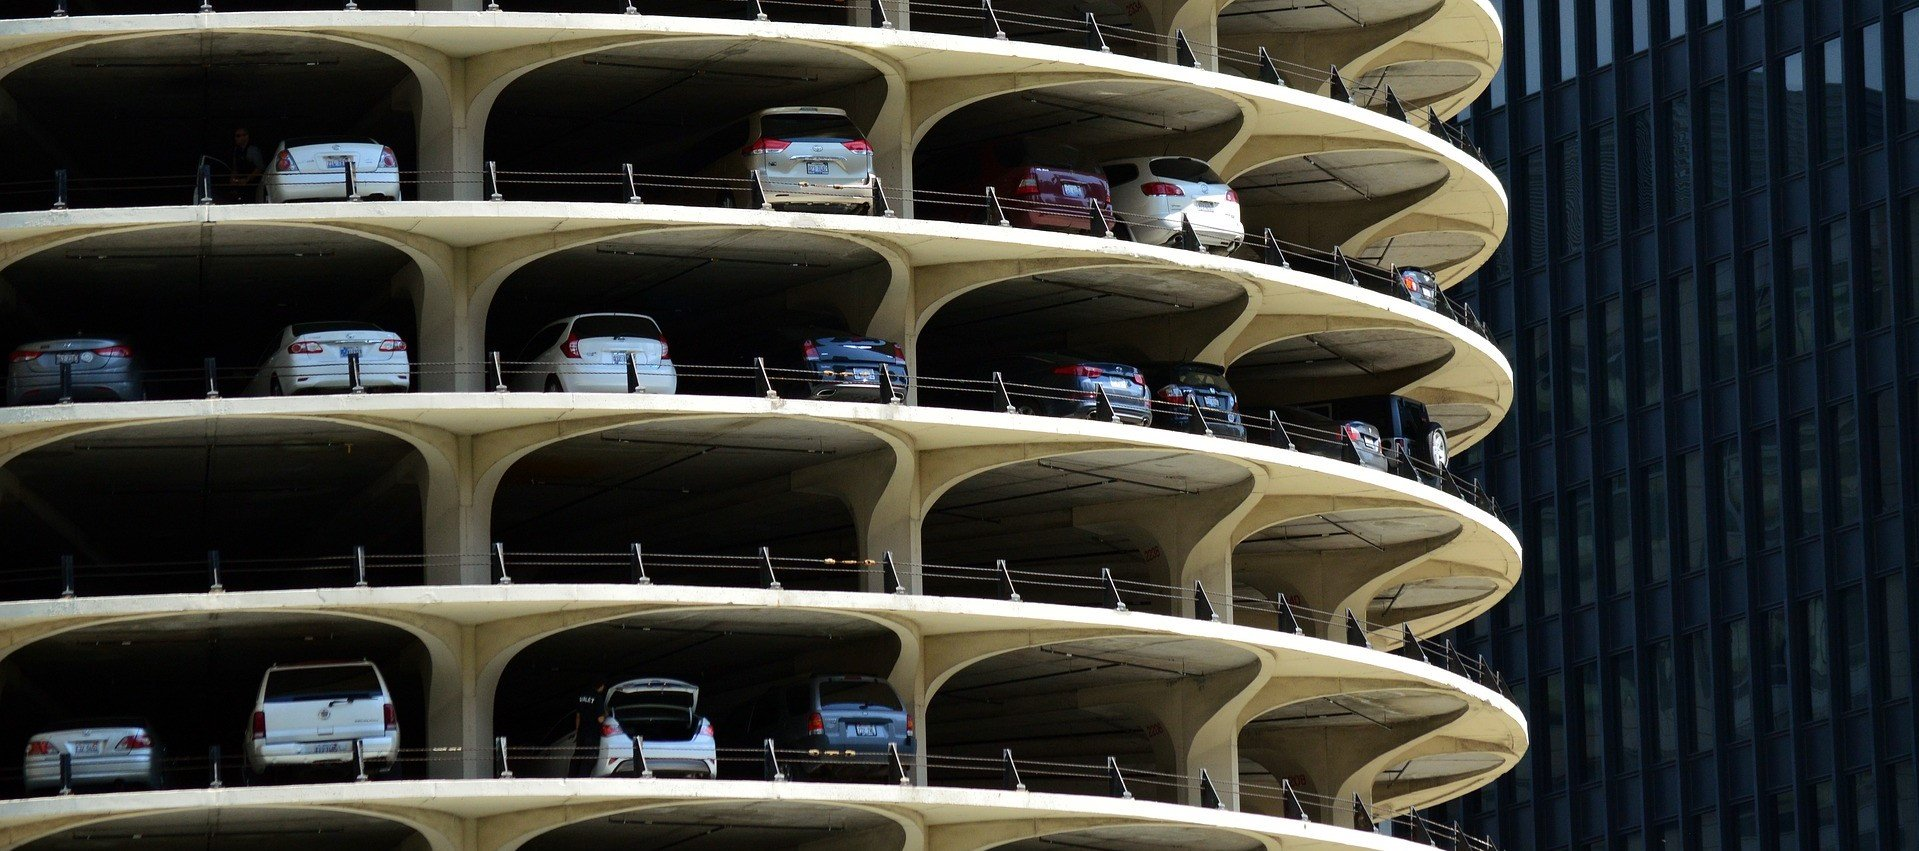 Parking Garage at Marina City Illinois - VeteranCarDonation.org